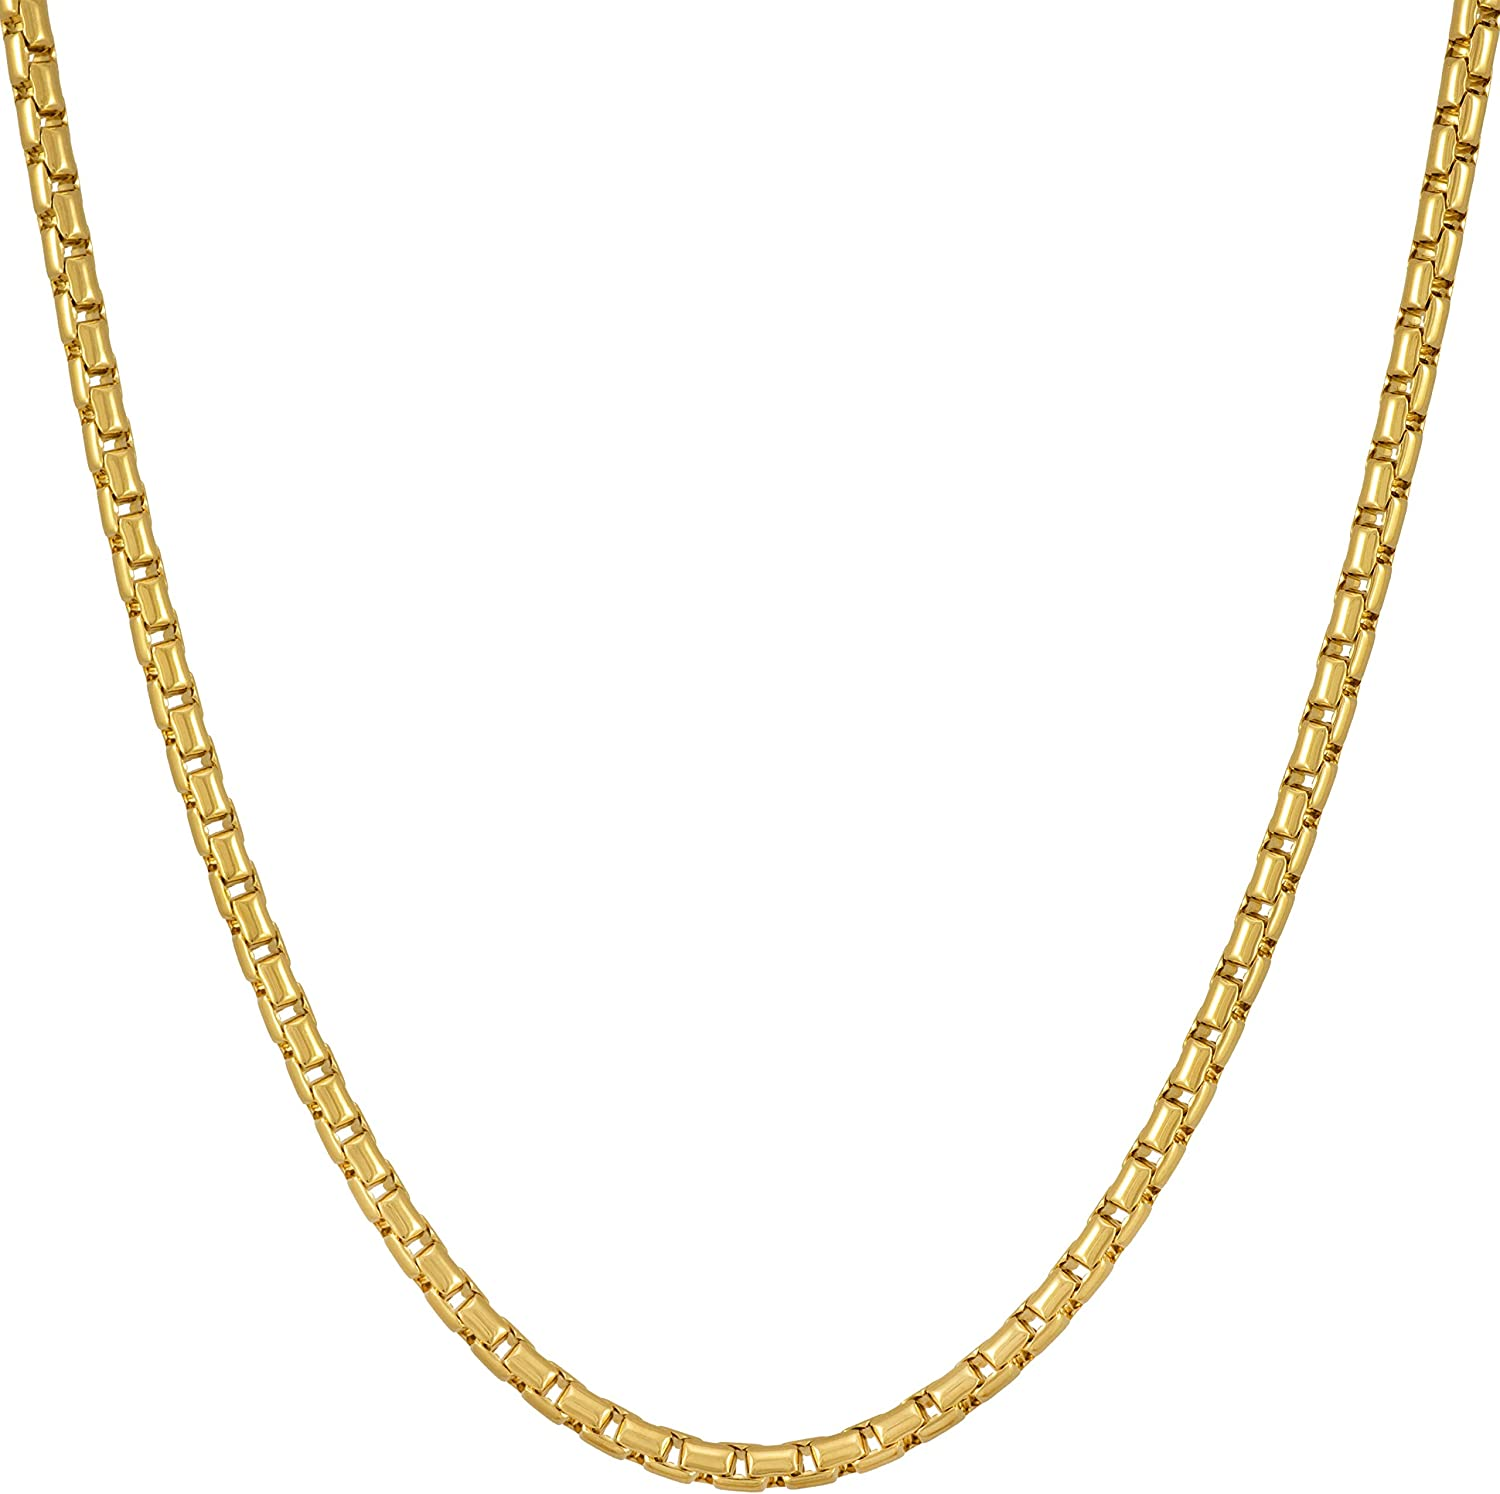 Lifetime Jewelry 2 2mm Rounded Box Chain Necklace 24k Gold Plated For Women Men 16 0 Amazon Com